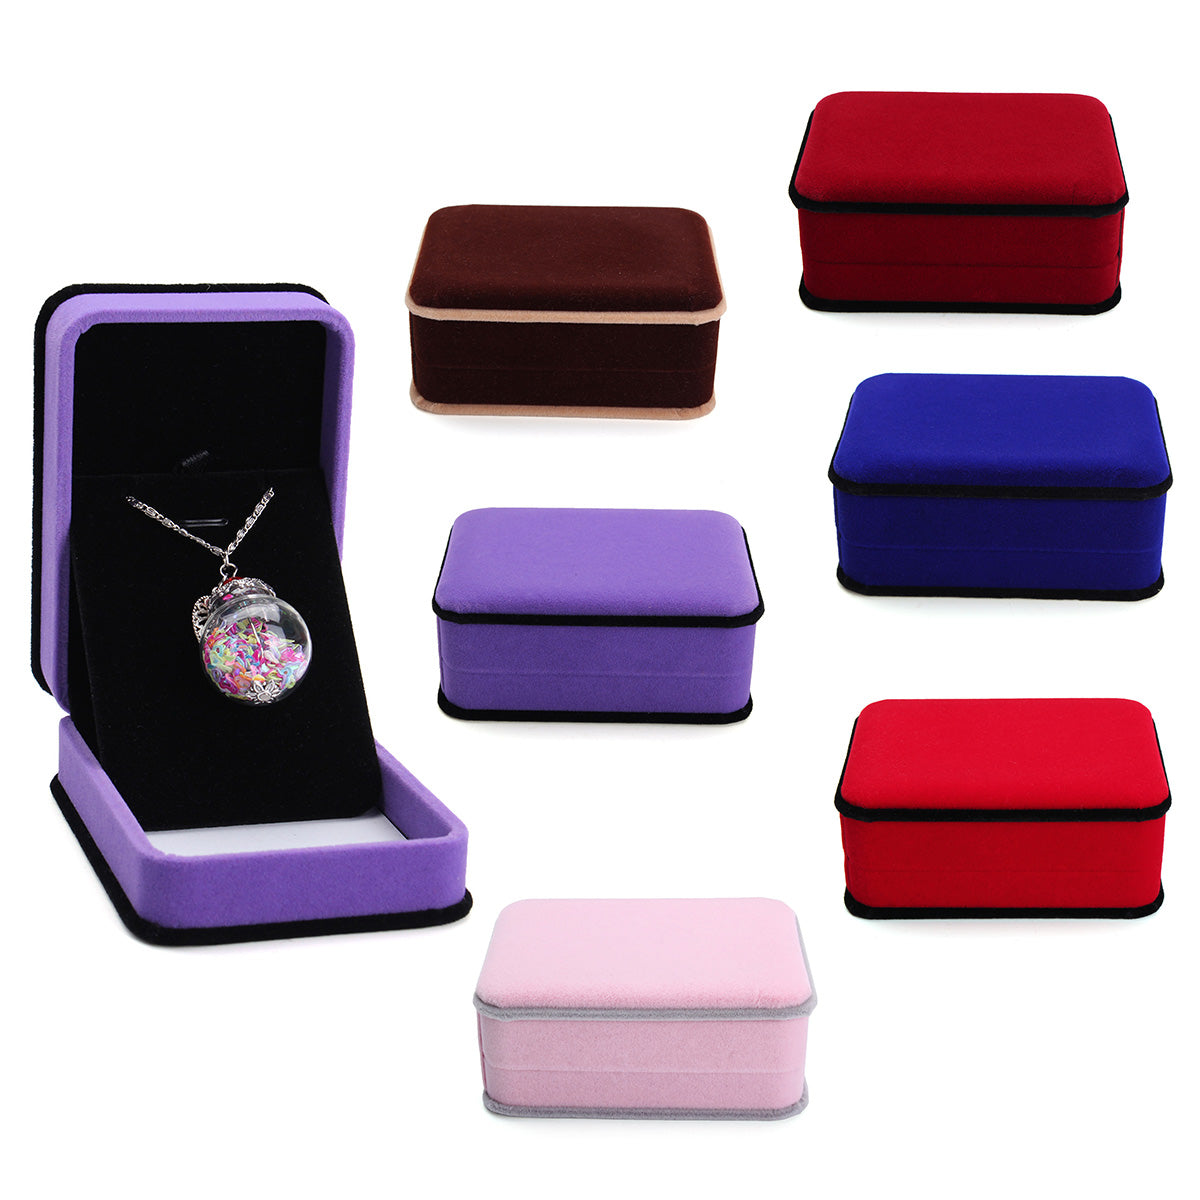 Flocking Octagonal Necklace Earrings Jewelry Packaging Gift Box